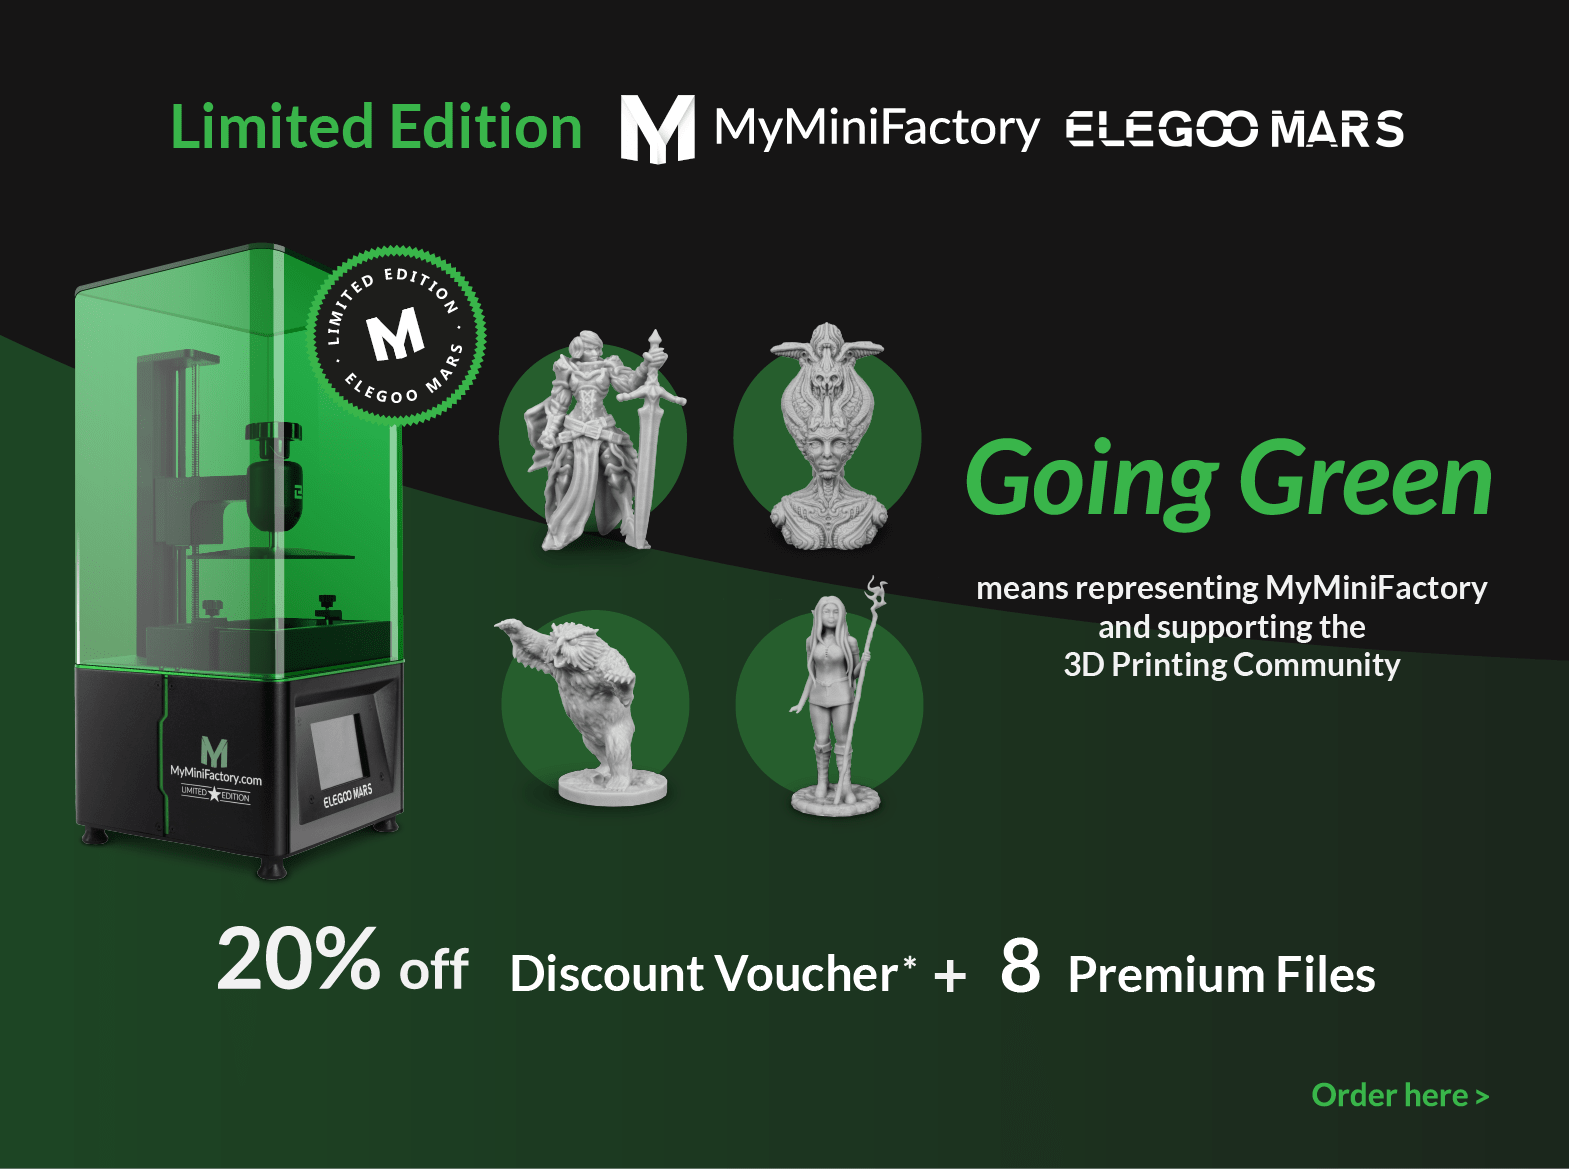 Elegoo Mars Limited Edition 20% discount code + 8 premium files. Elegoo Mars printer along with some table top figurines